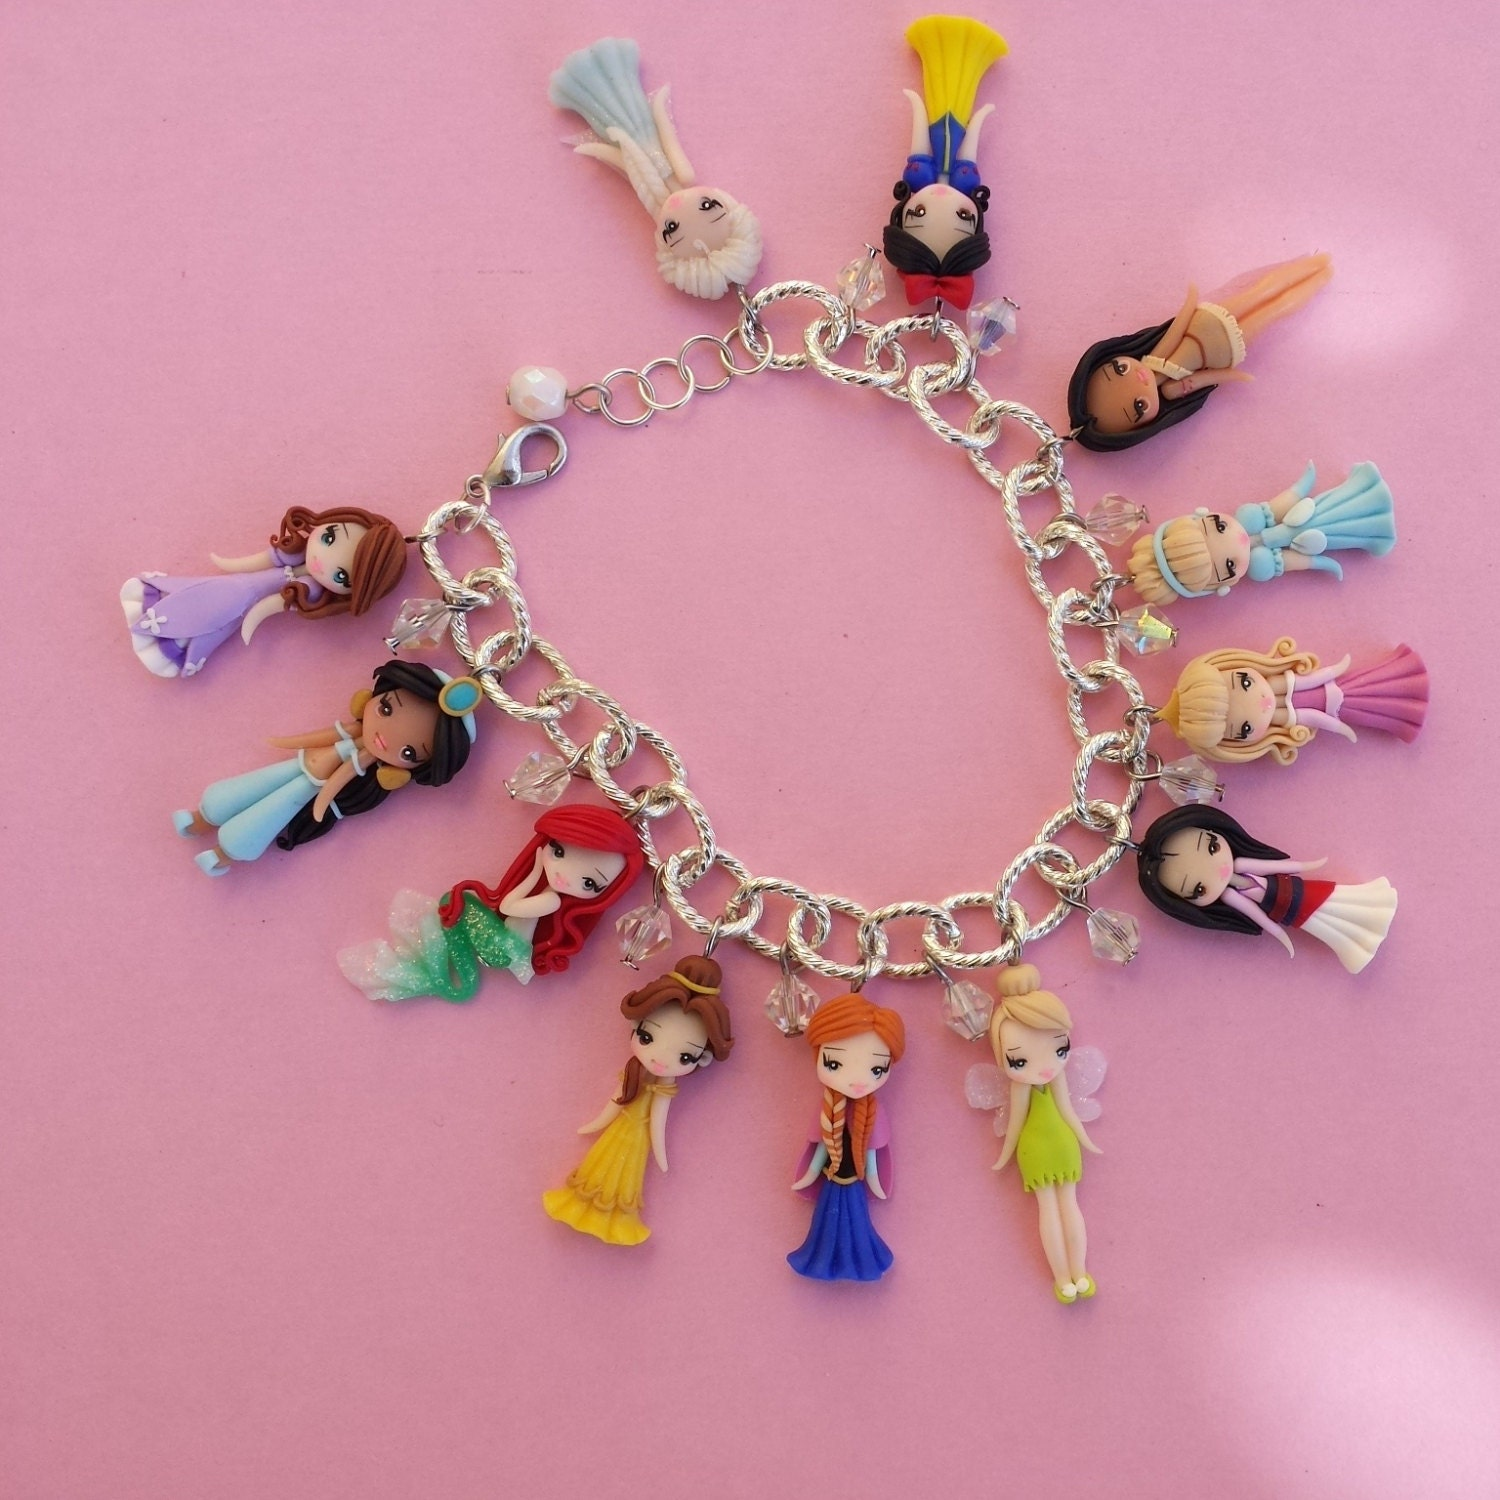 Bracelet with disney princesses in fimo polymer clay